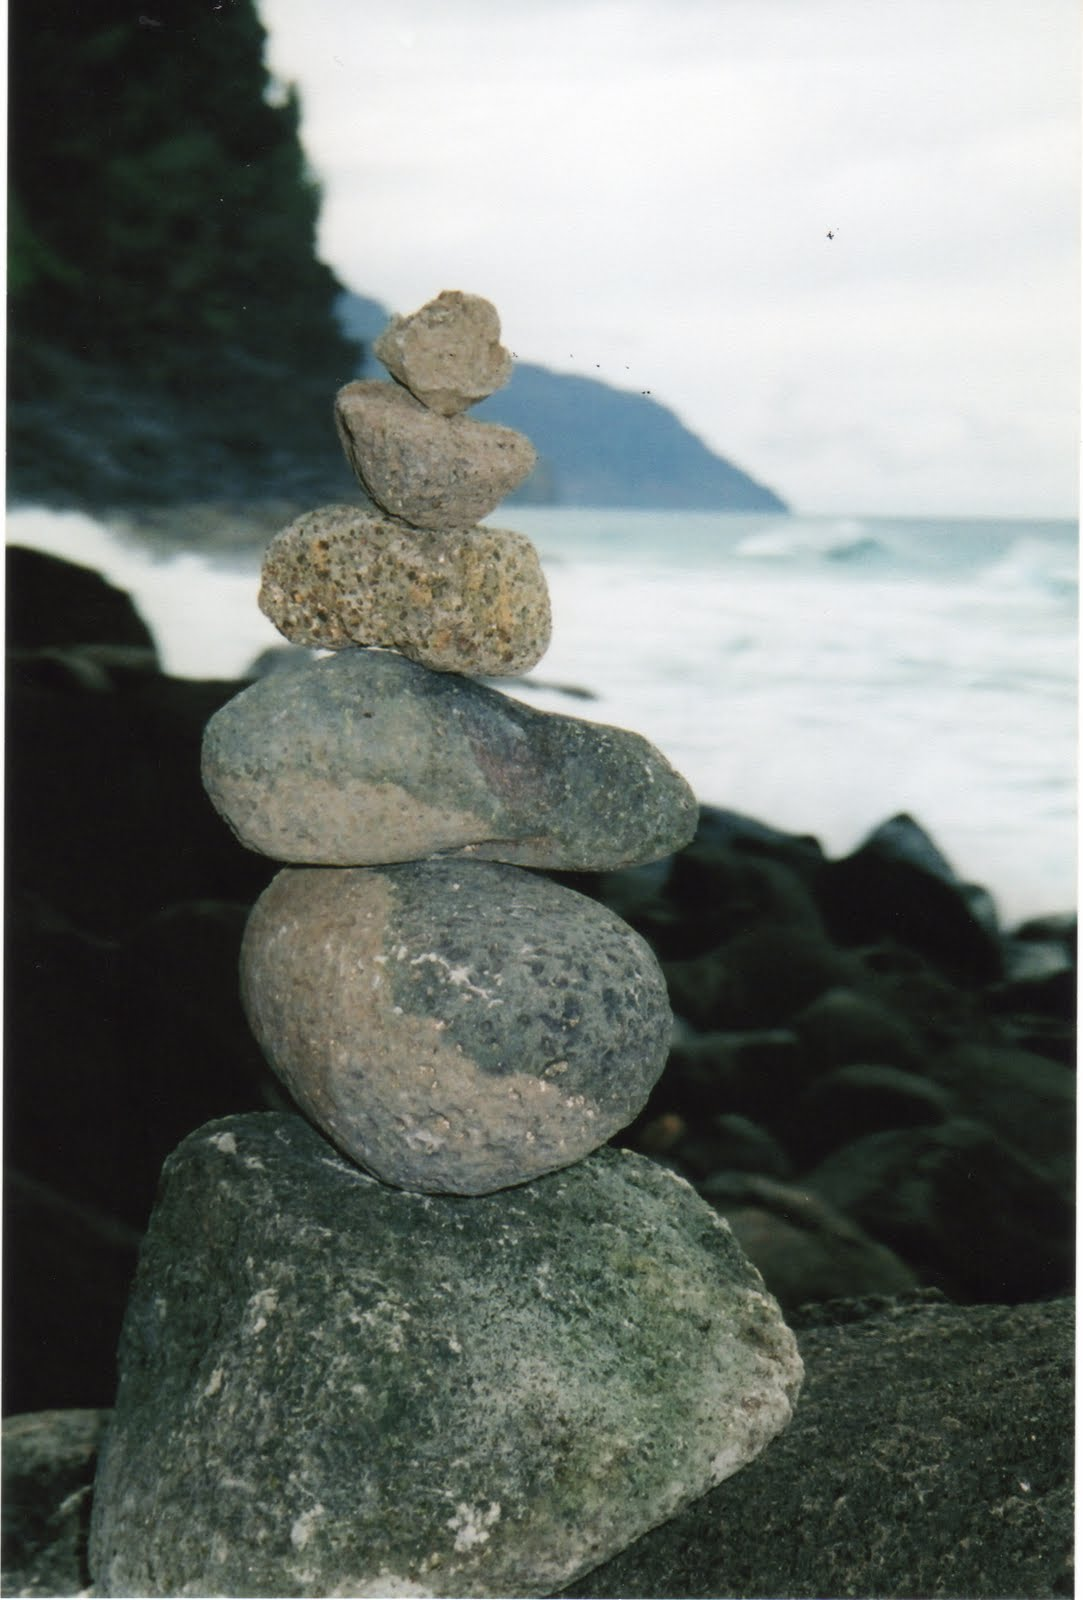 Sharon's Souvenirs: The story of stacked rocks continues...